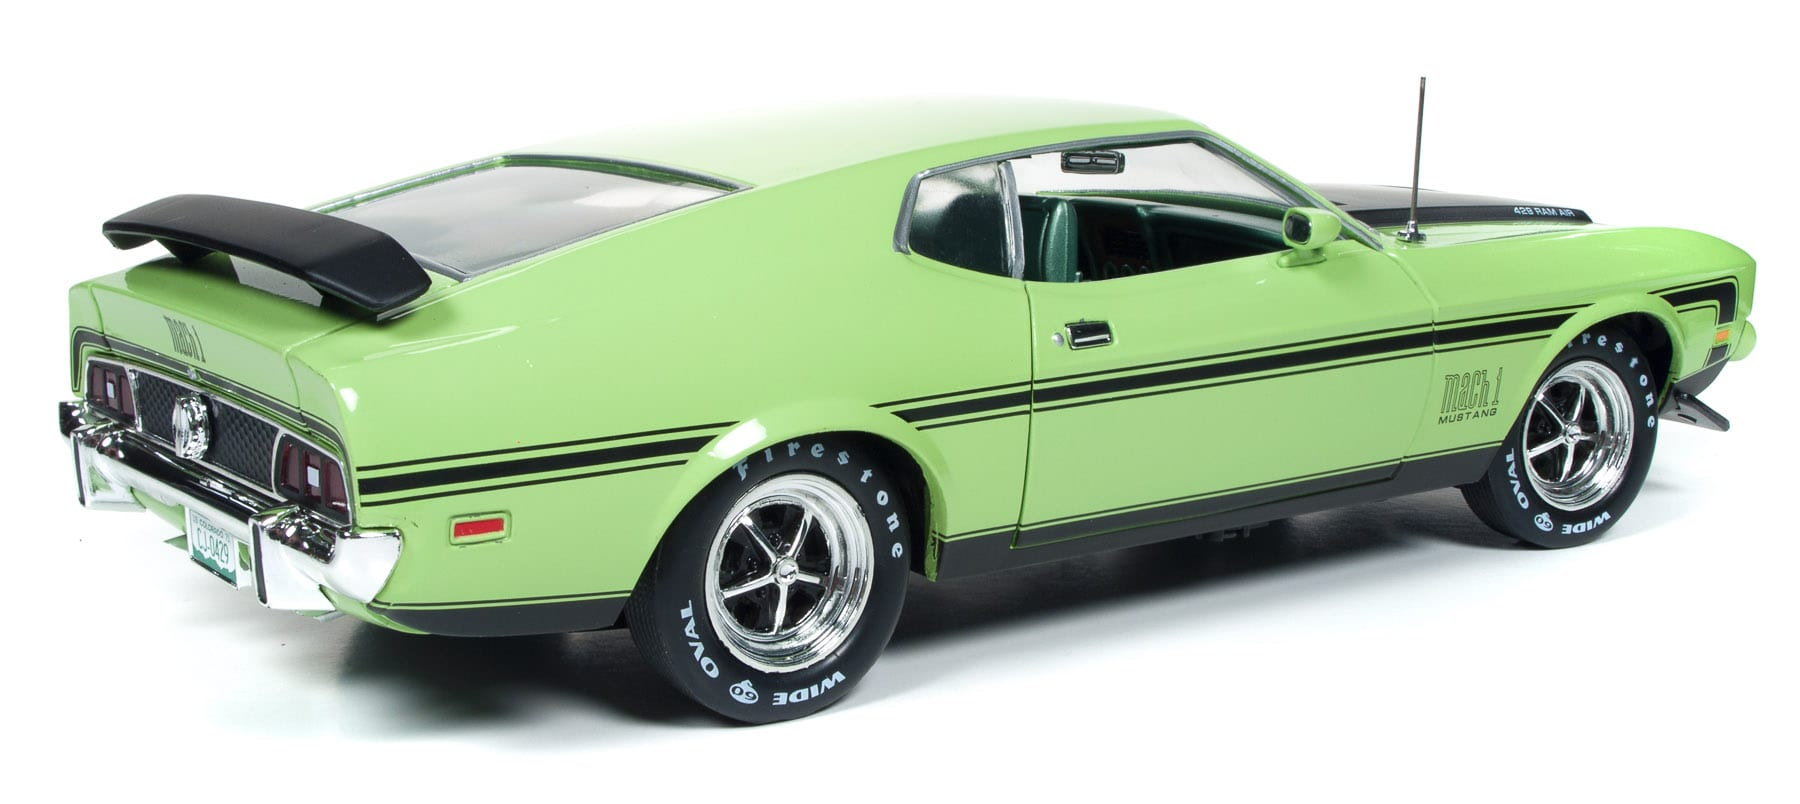 1971 ford mustang mach 1 round2. Cars Review. Best American Auto & Cars Review